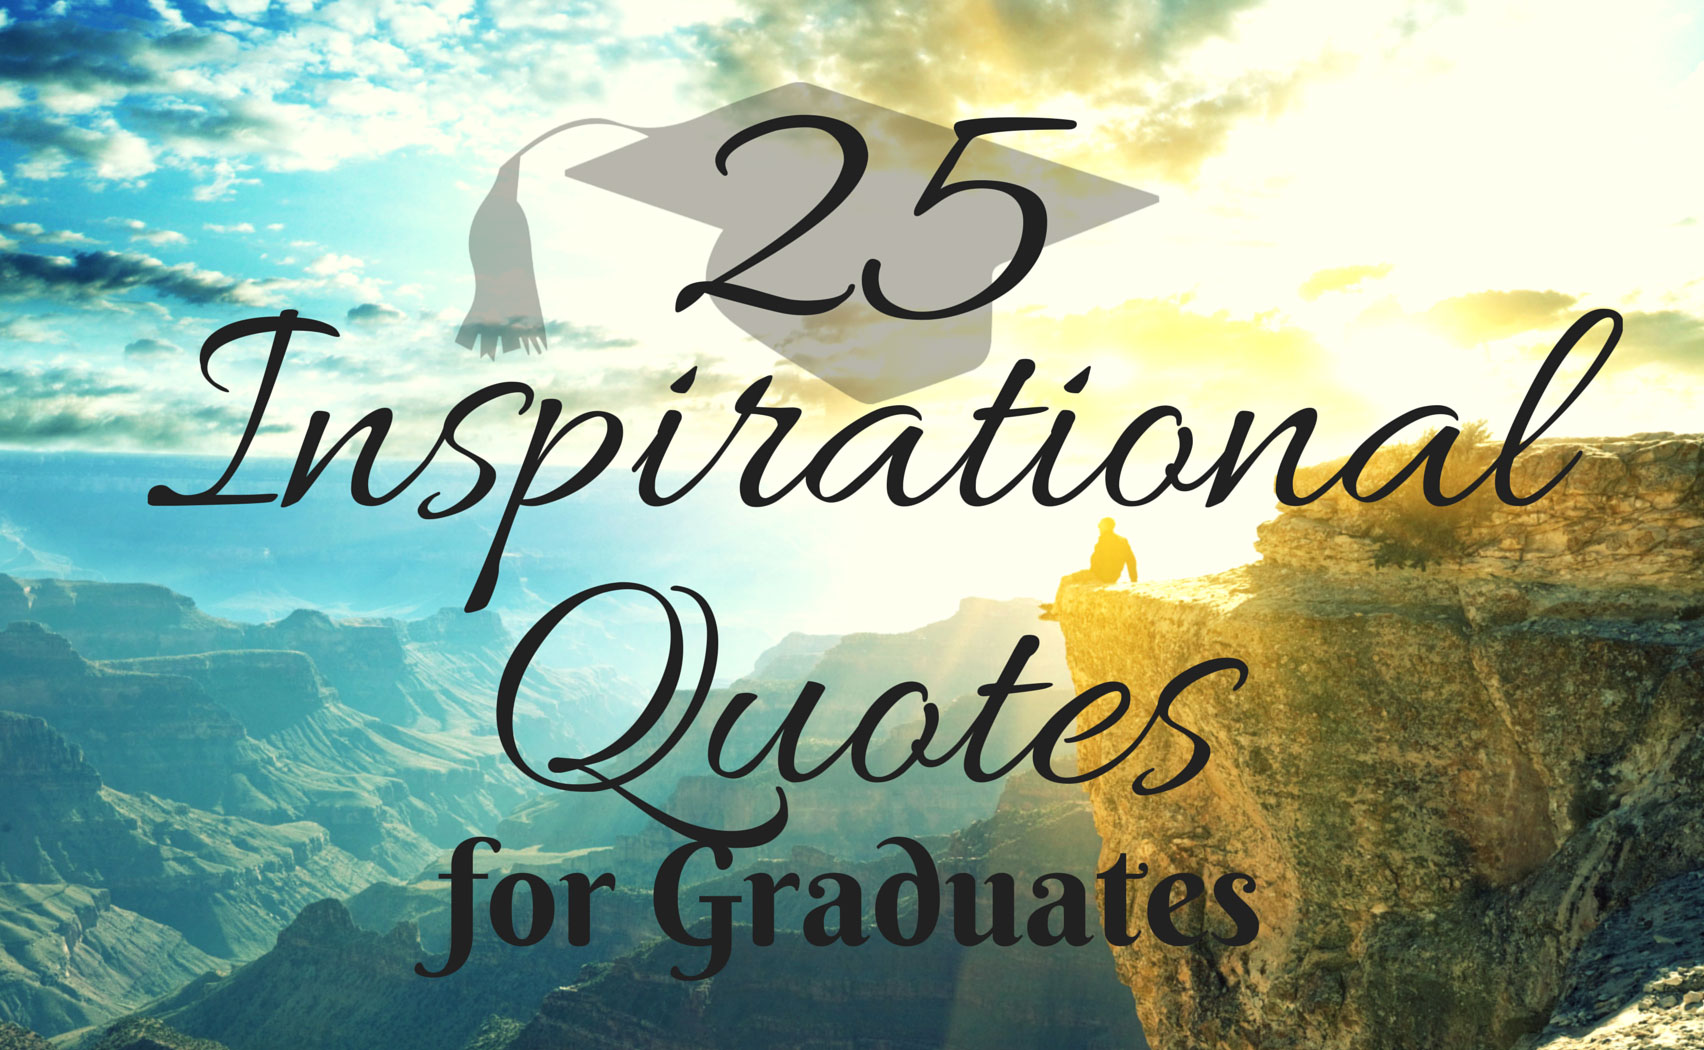 Inspirational Slogans Iza Design Blog25 Inspirational Quotes For Graduates